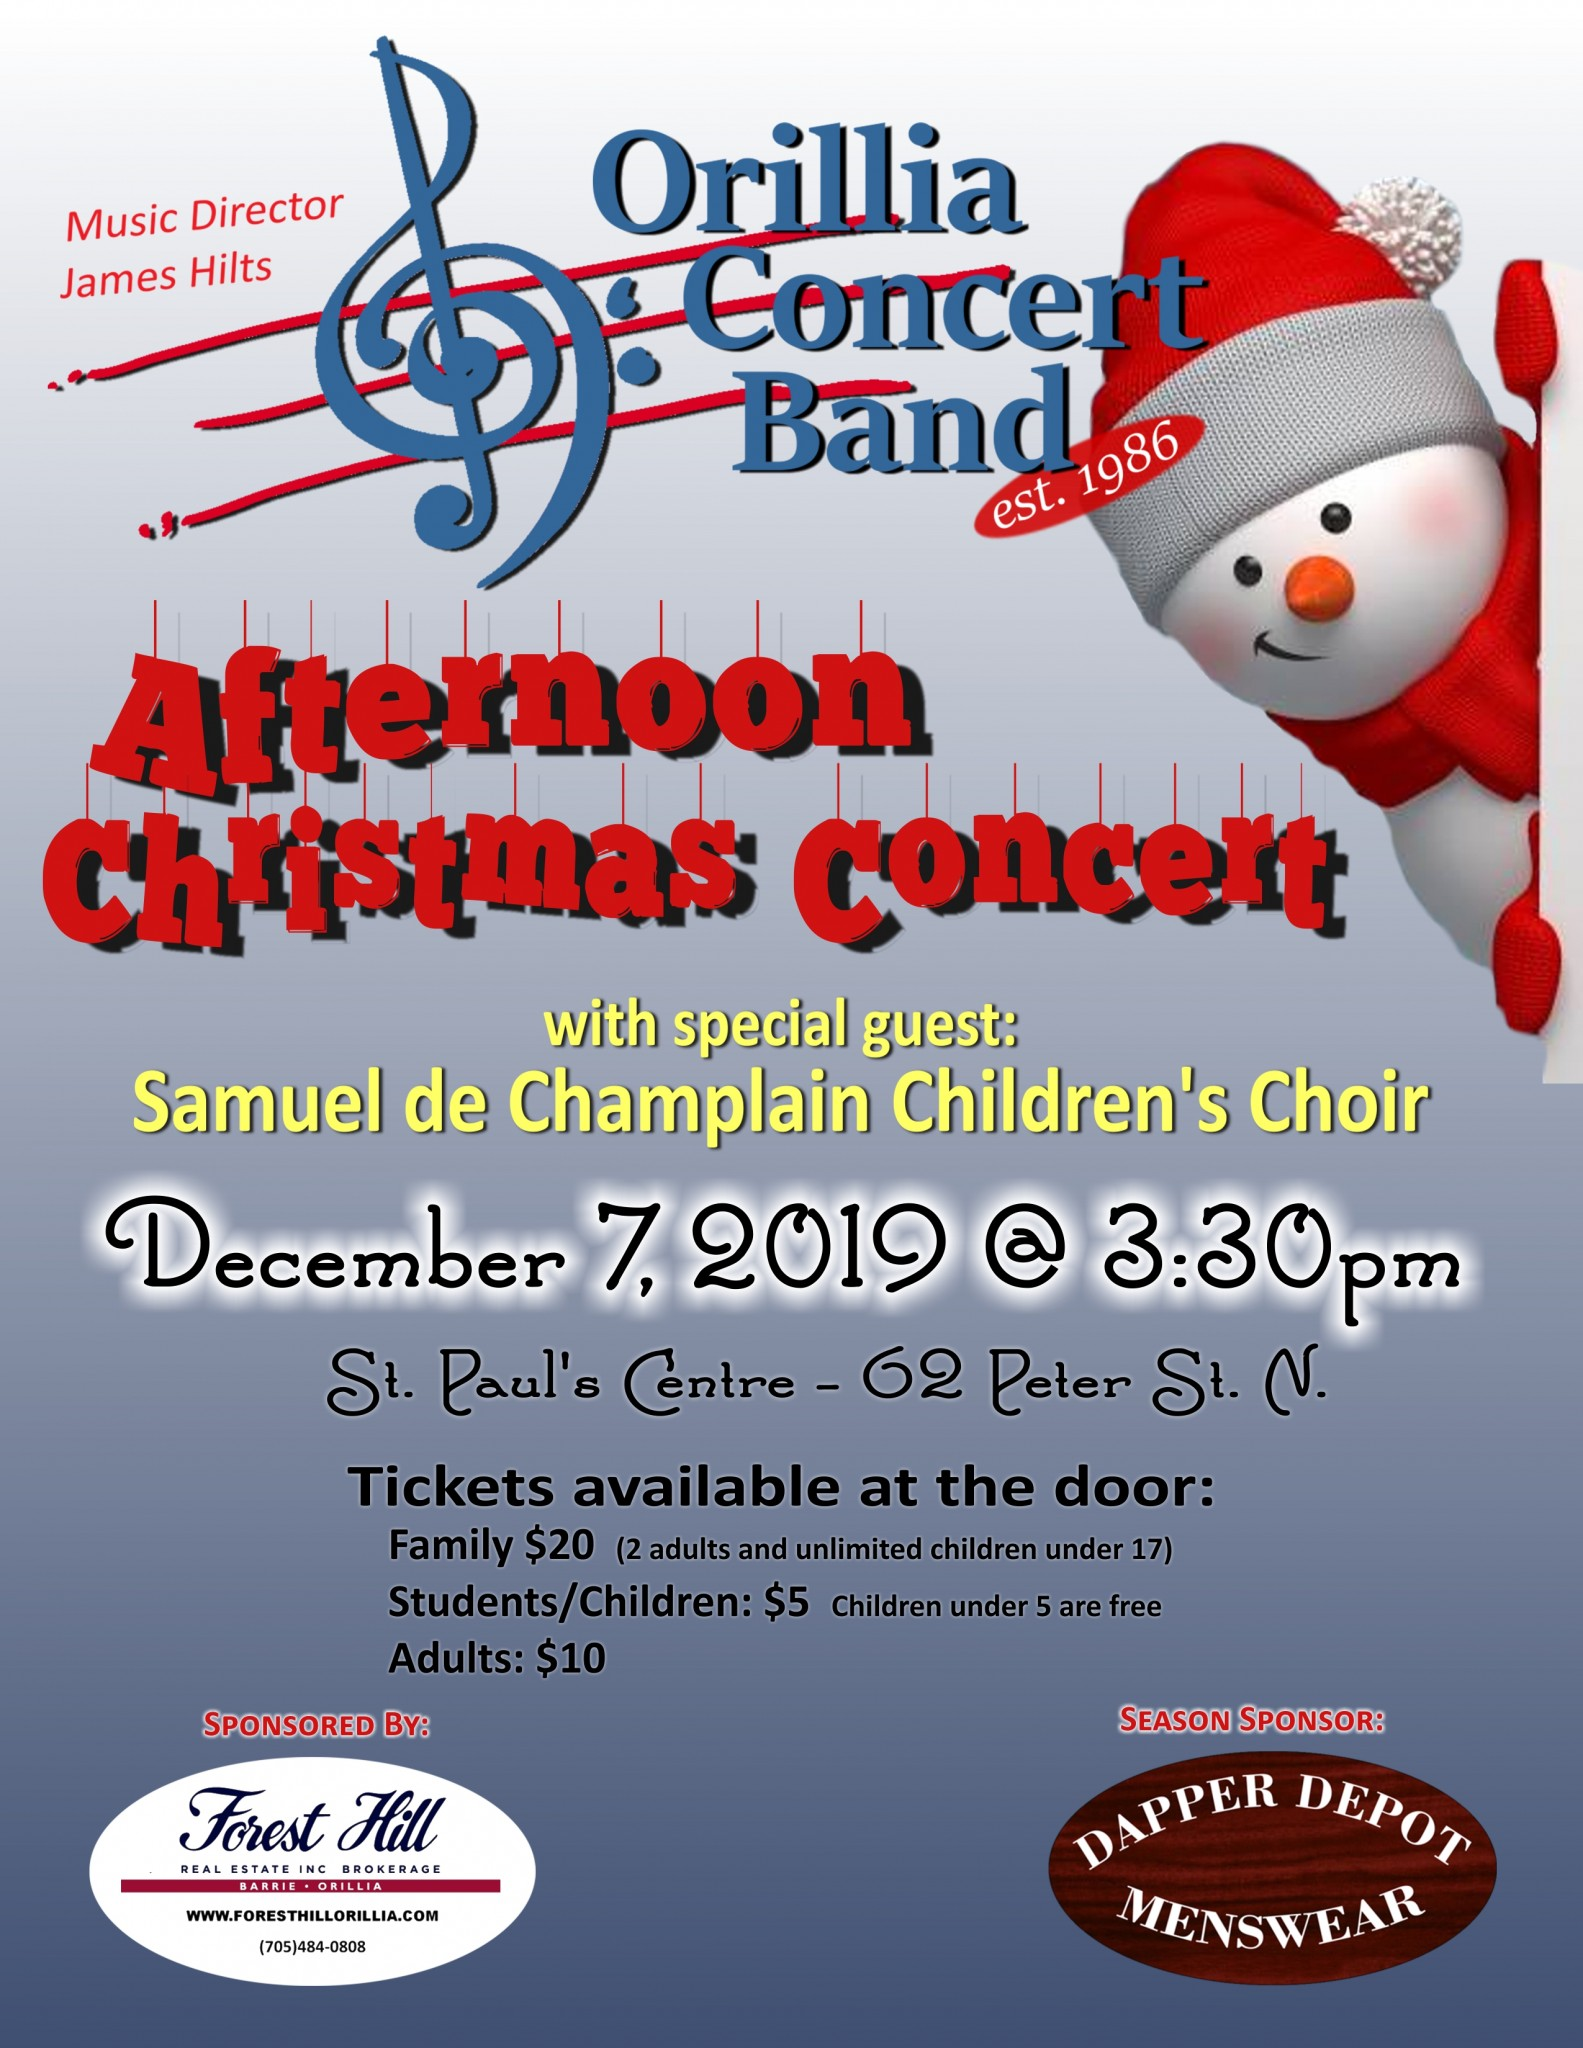 """20191207 AfternoonPoster - ORILLIA CONCERT BAND """"AFTERNOON CHRISTMAS CONCERT"""""""